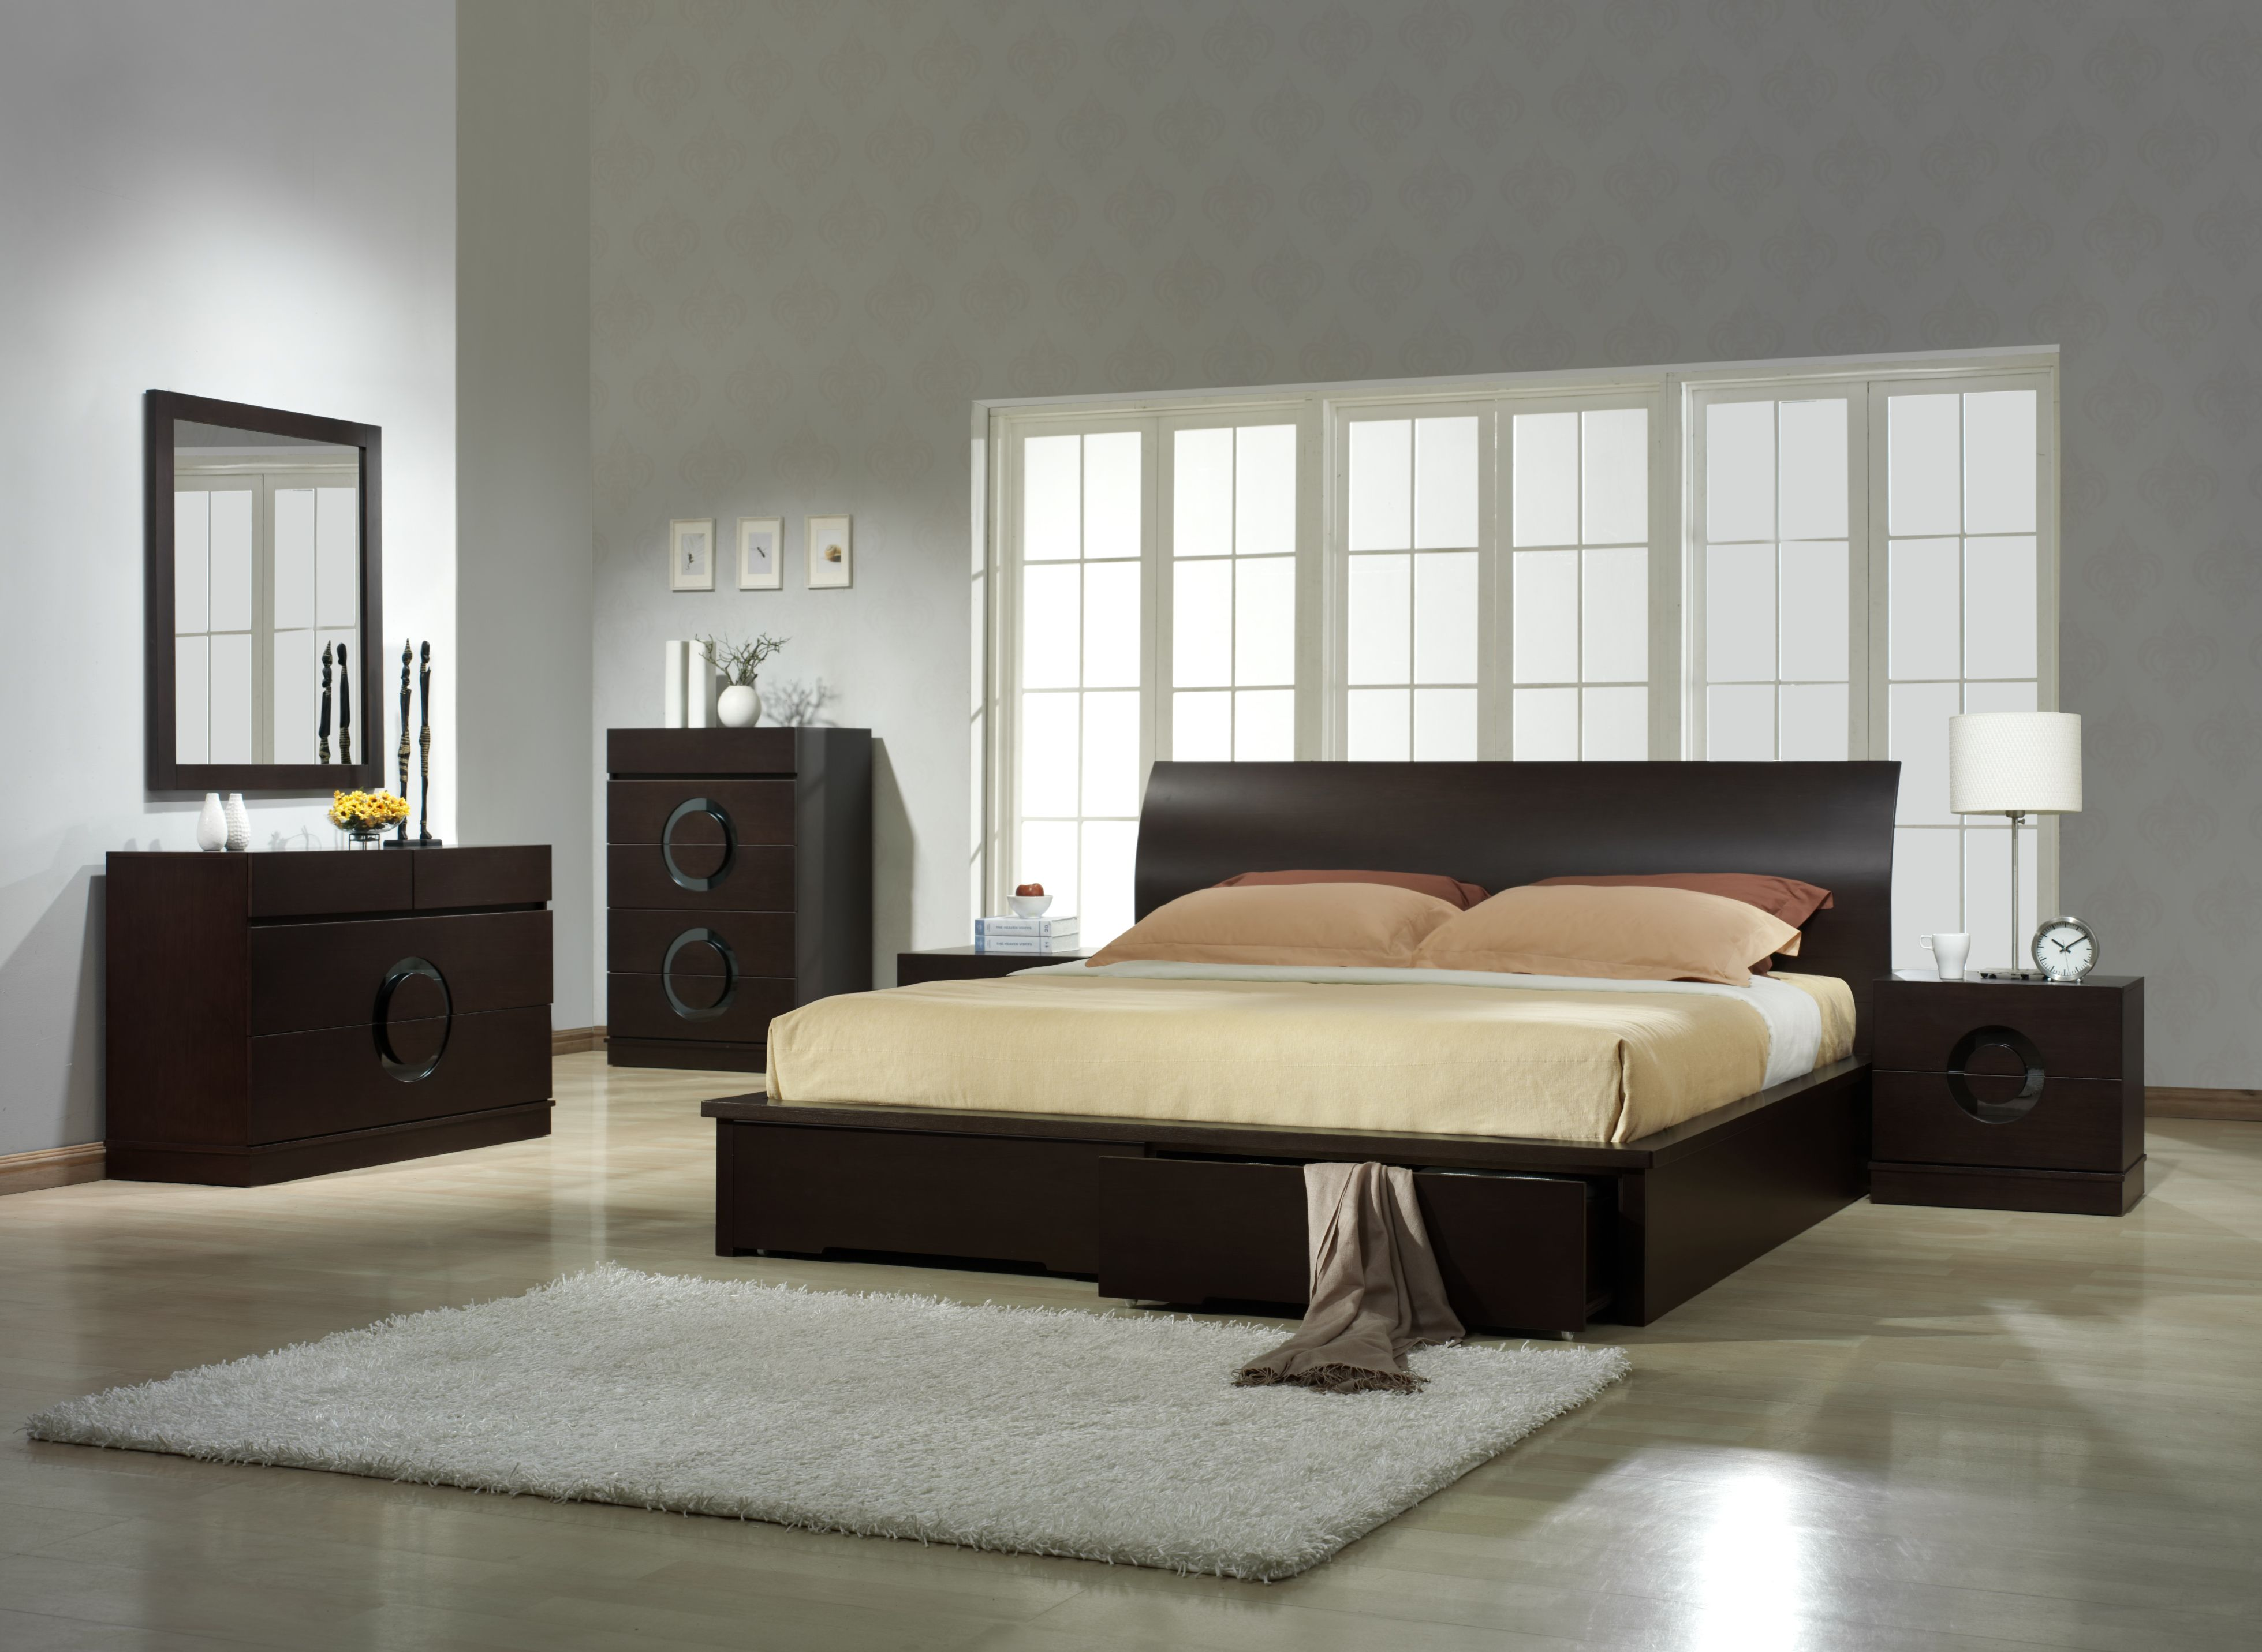 Best Pictures Of Contemporary Bedroom Furniture Sets Cheap Set Feature Elegant Dark Brown Finish Bed Frame Modern Bedroom Furniture Zen Bedroom Remodel Bedroom